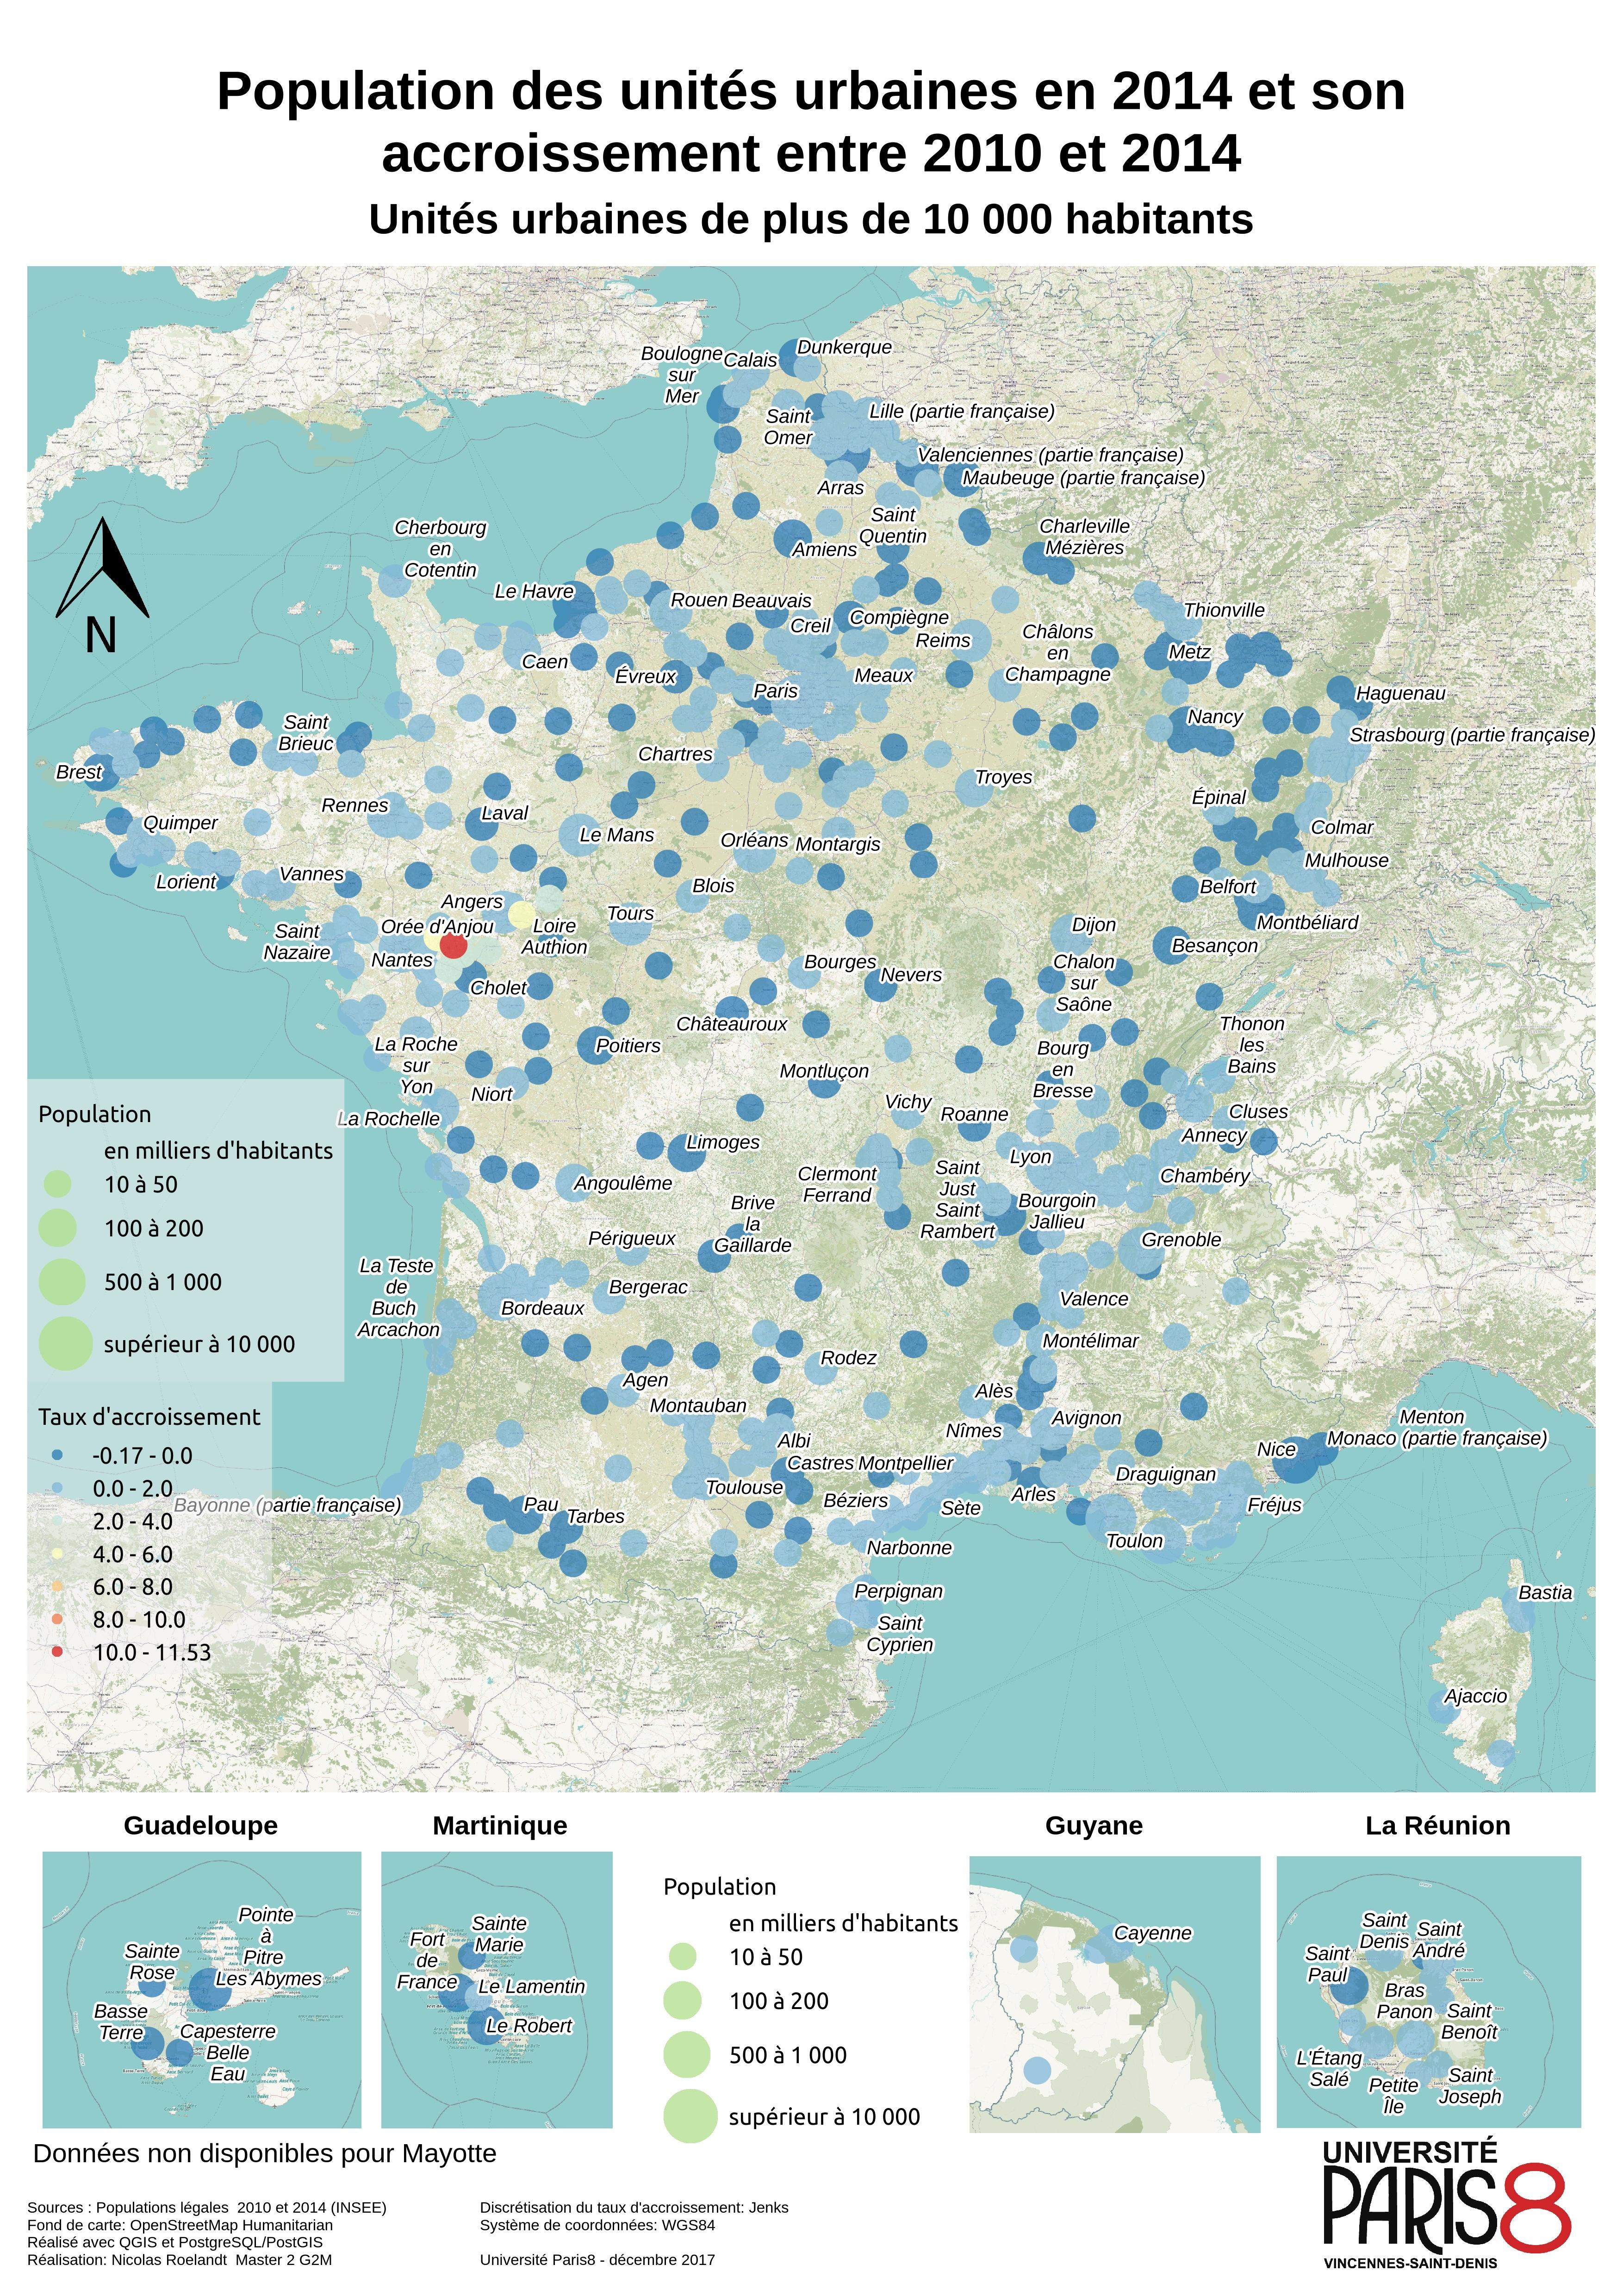 French Urban Population growth between 2010 and 2014 map